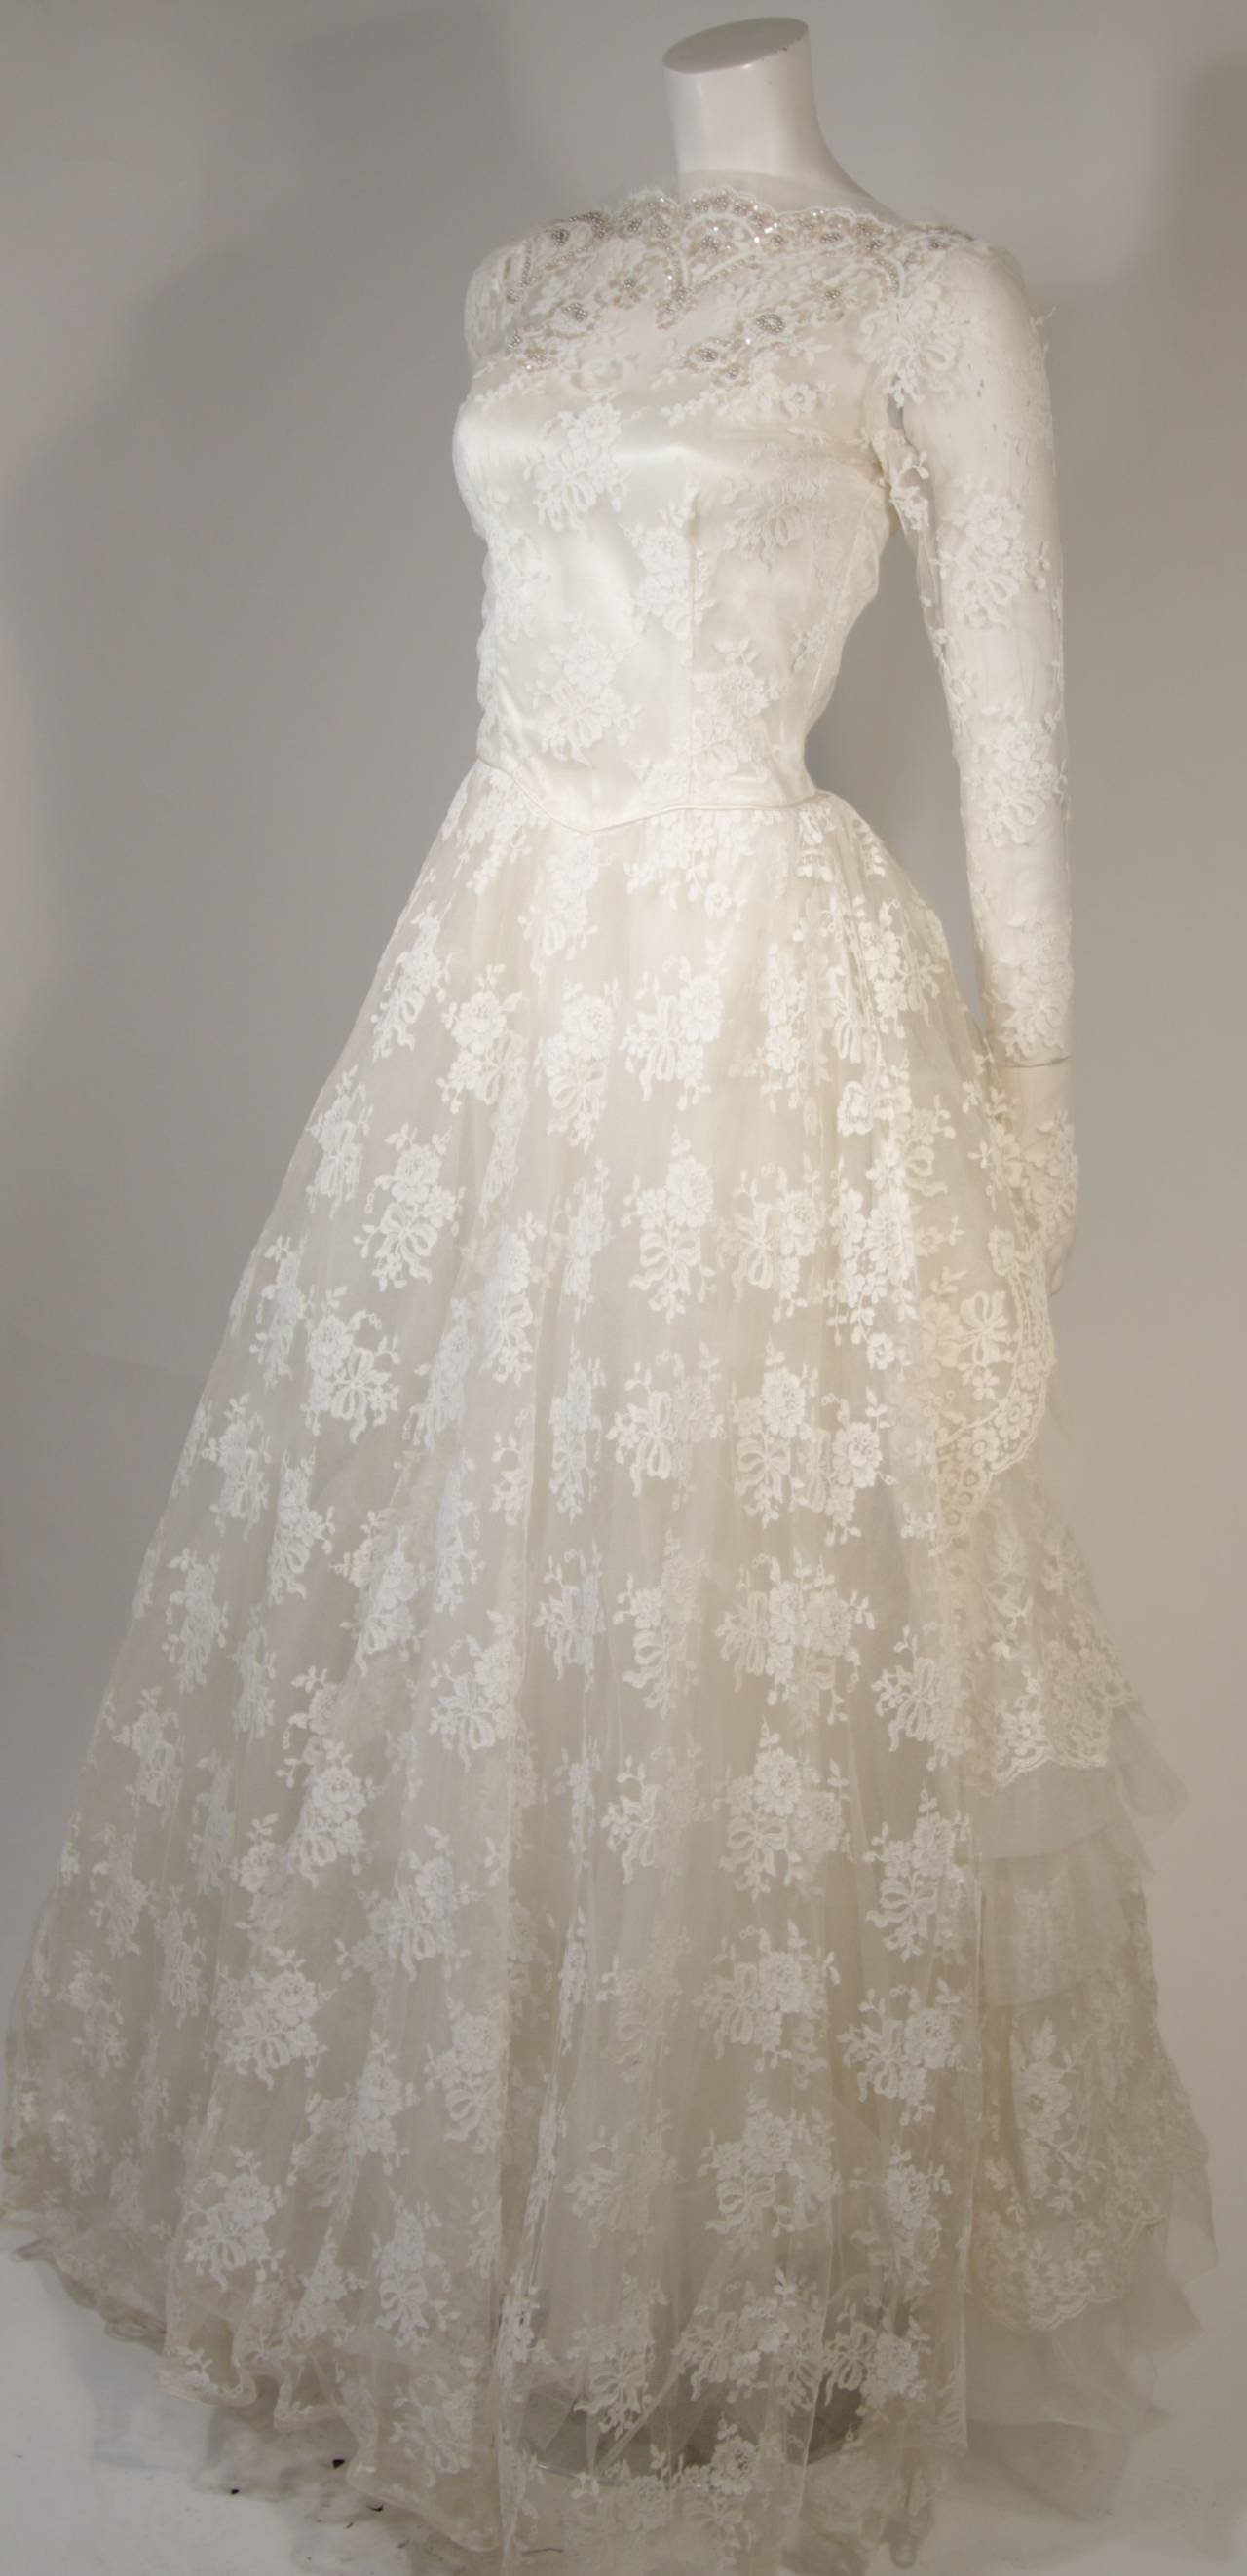 This vintage wedding gown is fabricated from layers of white lace featuring scalloped edges and satin. The scalloped neckline is adorned with sequins and pearl accents. There are center back button closures. The dress has some slight discoloration